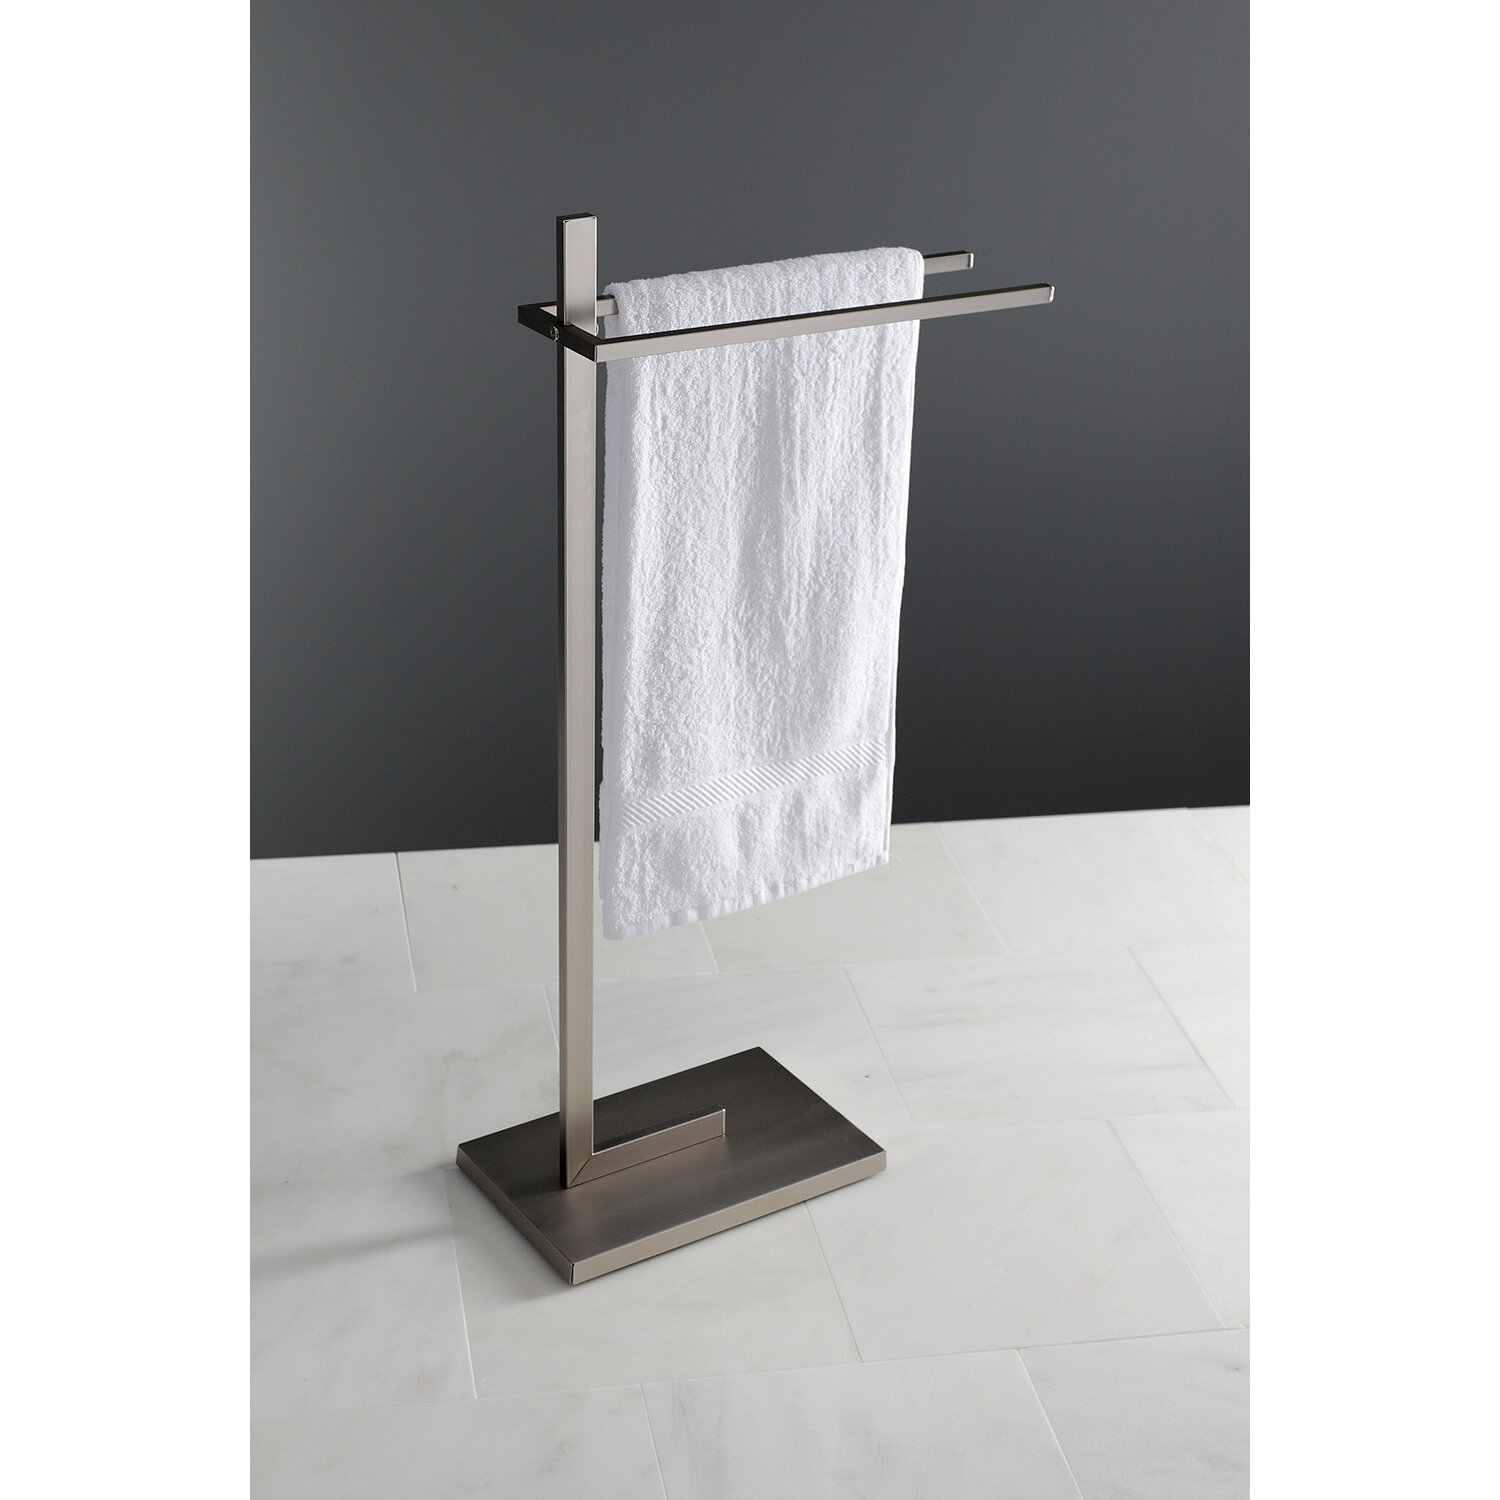 Sale Edenscape Pedestal Dual Free Standing Towel Stand Furniture Online Www46 Maychamcong Co